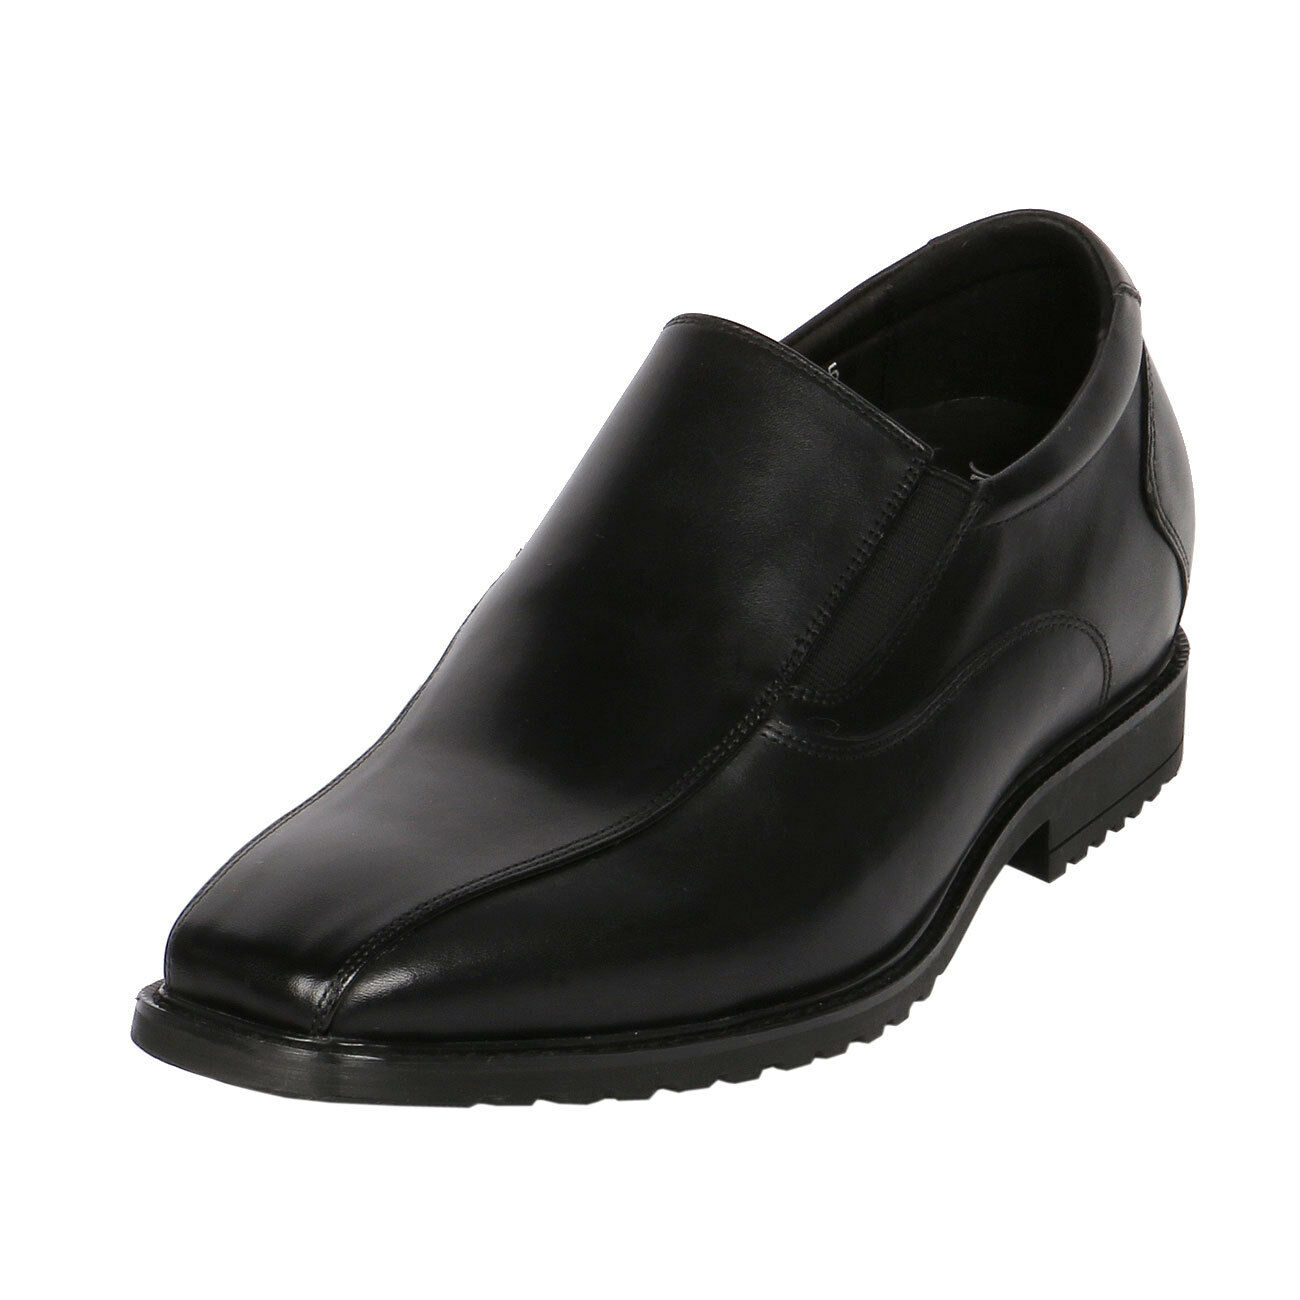 Slip on Tall Hommes cachés   Chaussure Lift 2.8  Taller, CYD40